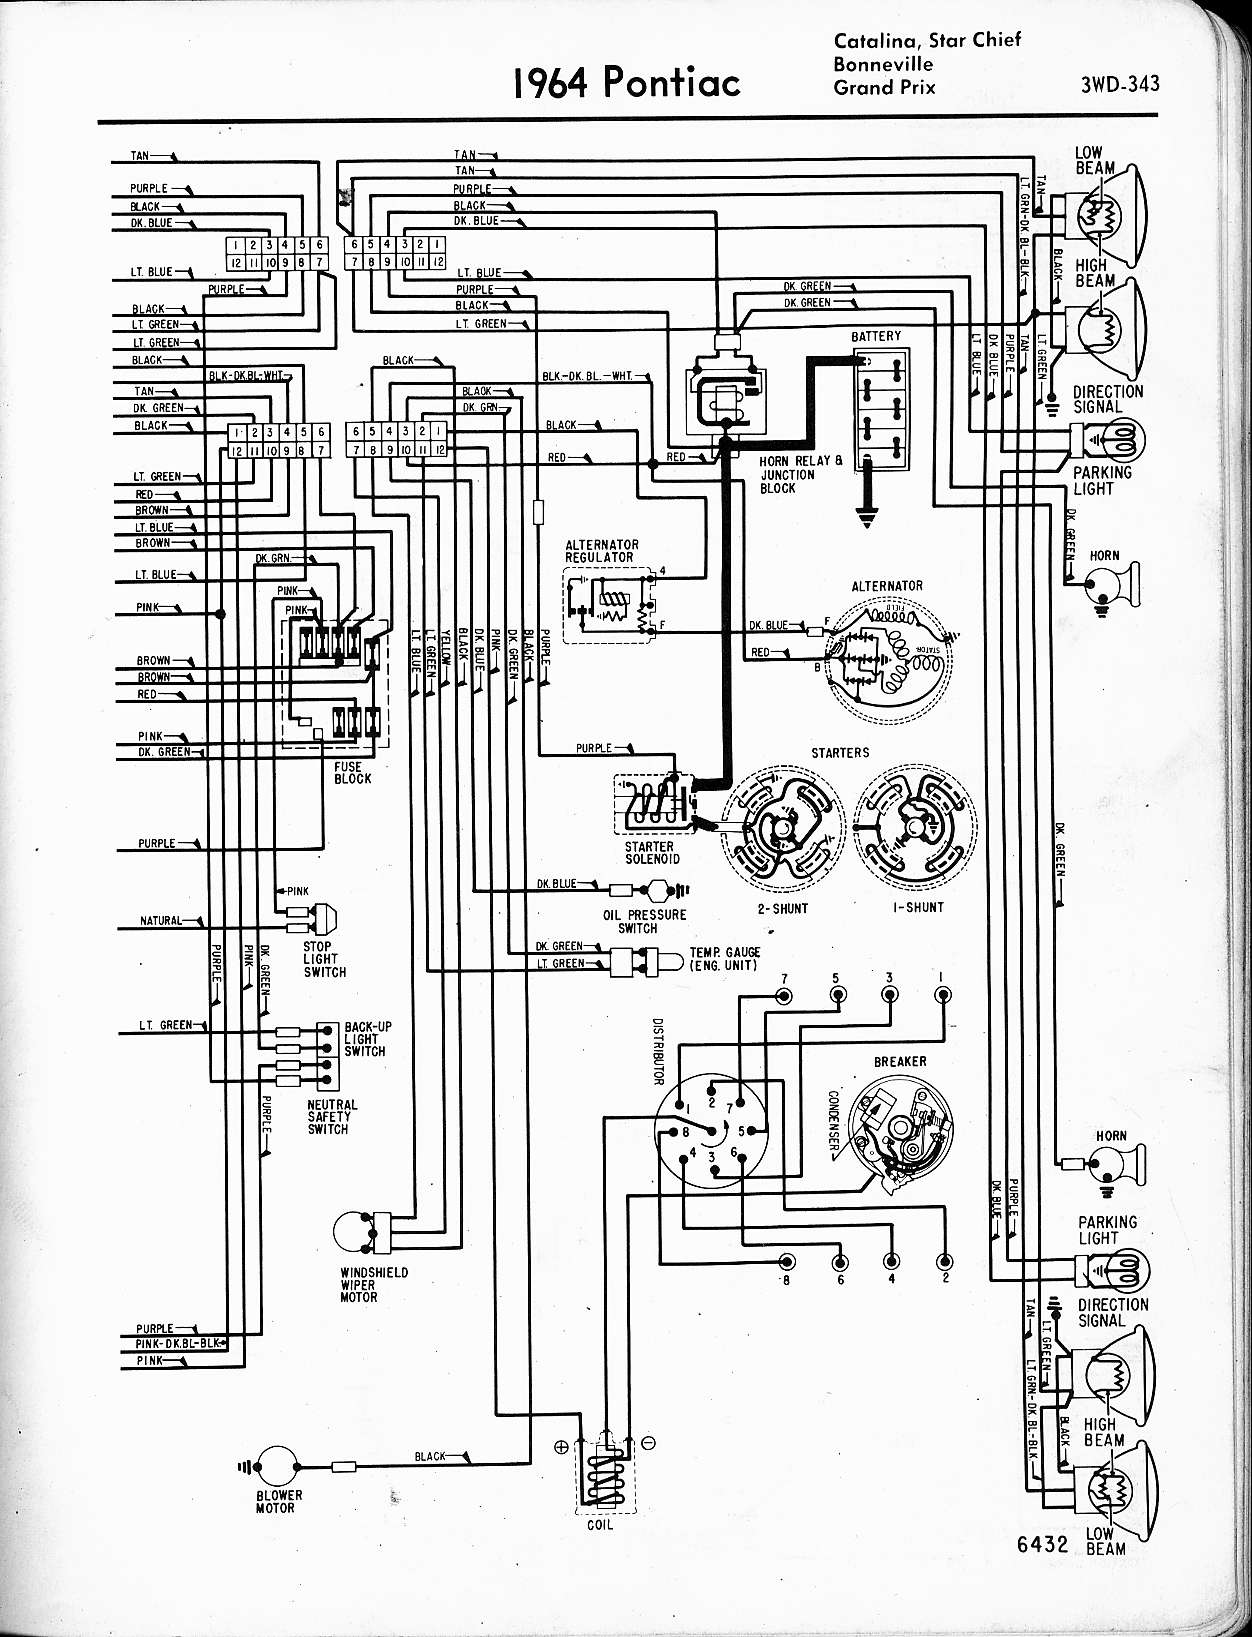 hight resolution of wallace racing wiring diagrams jaguar wiring diagram 1964 catalina star chief bonneville